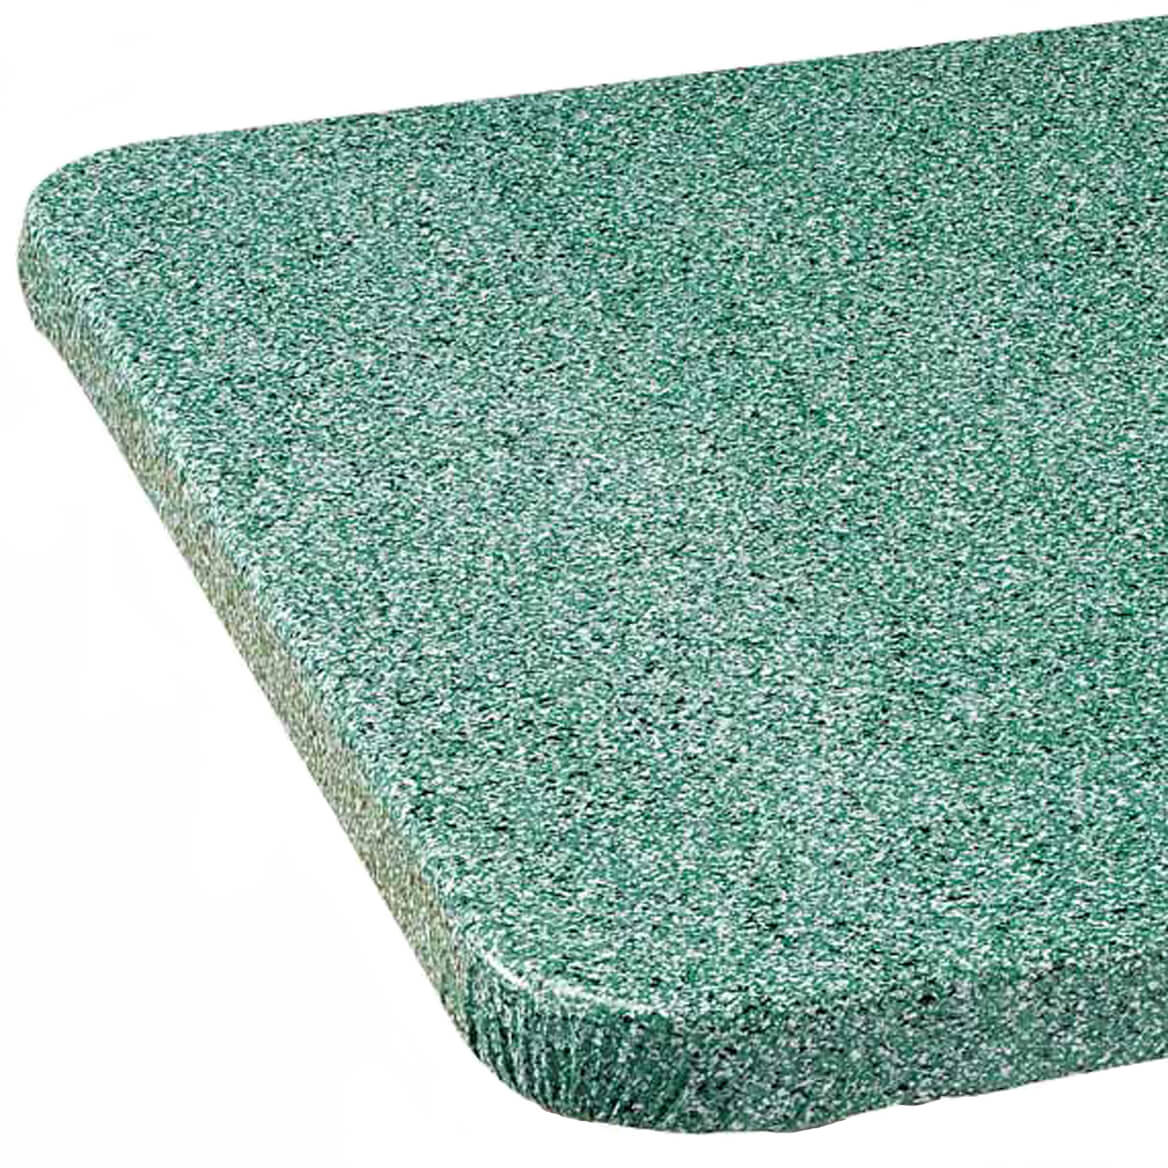 Granite Elasticized Banquet Table Cover - Kitchen - Miles Kimball